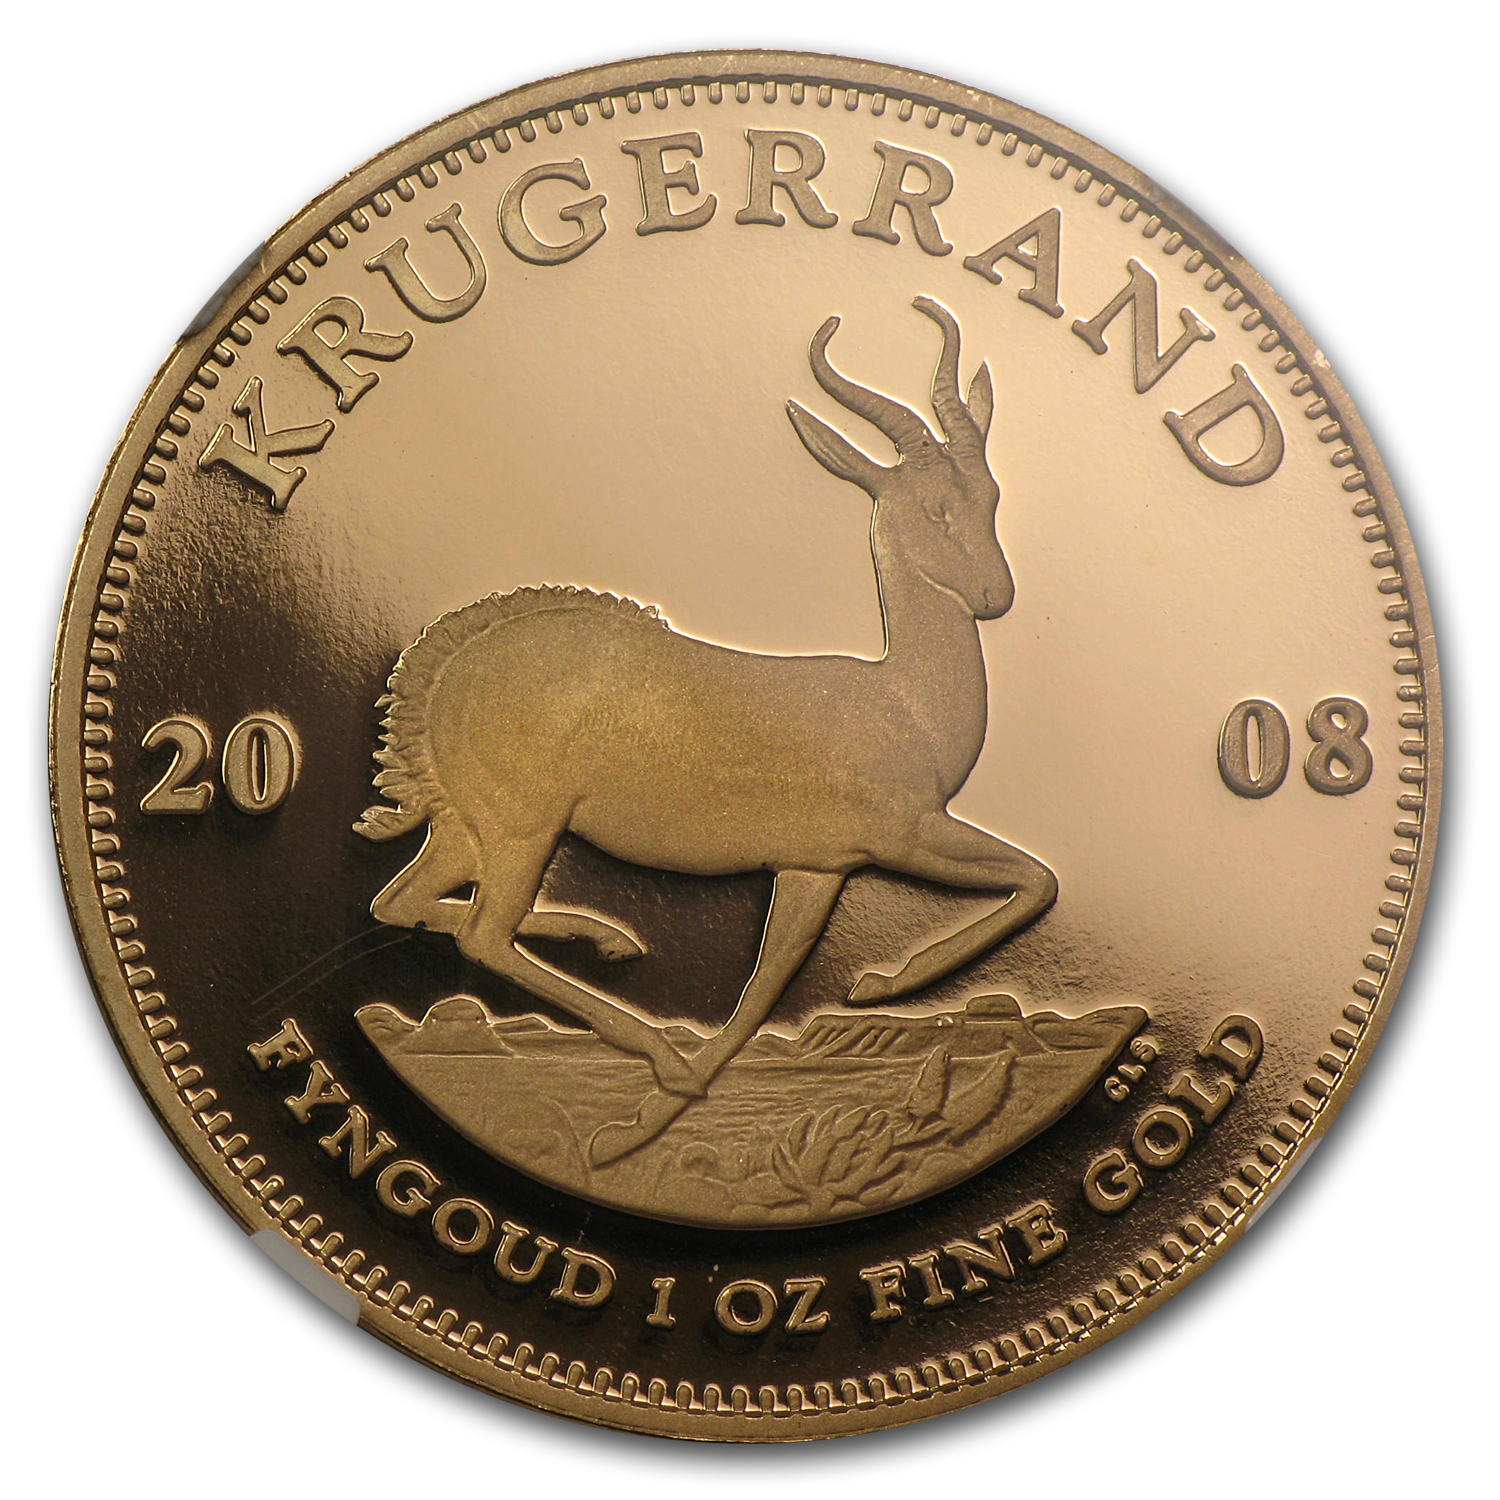 2008 1 oz Gold South African Krugerrand PF-70 NGC